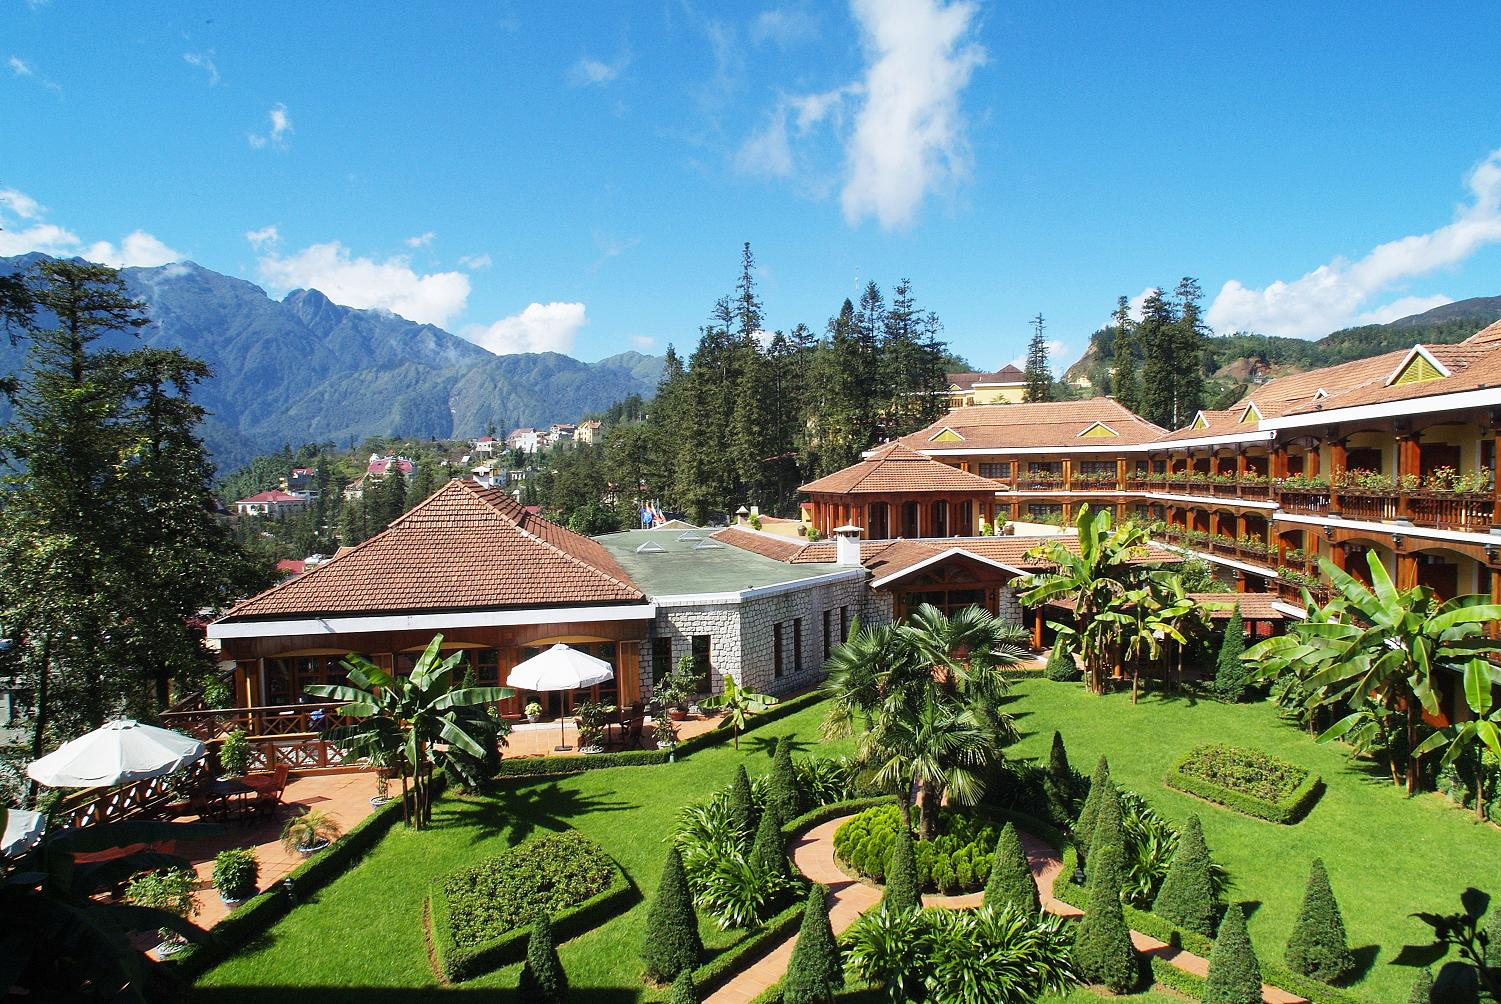 Y Linh Ho resort in Sapa